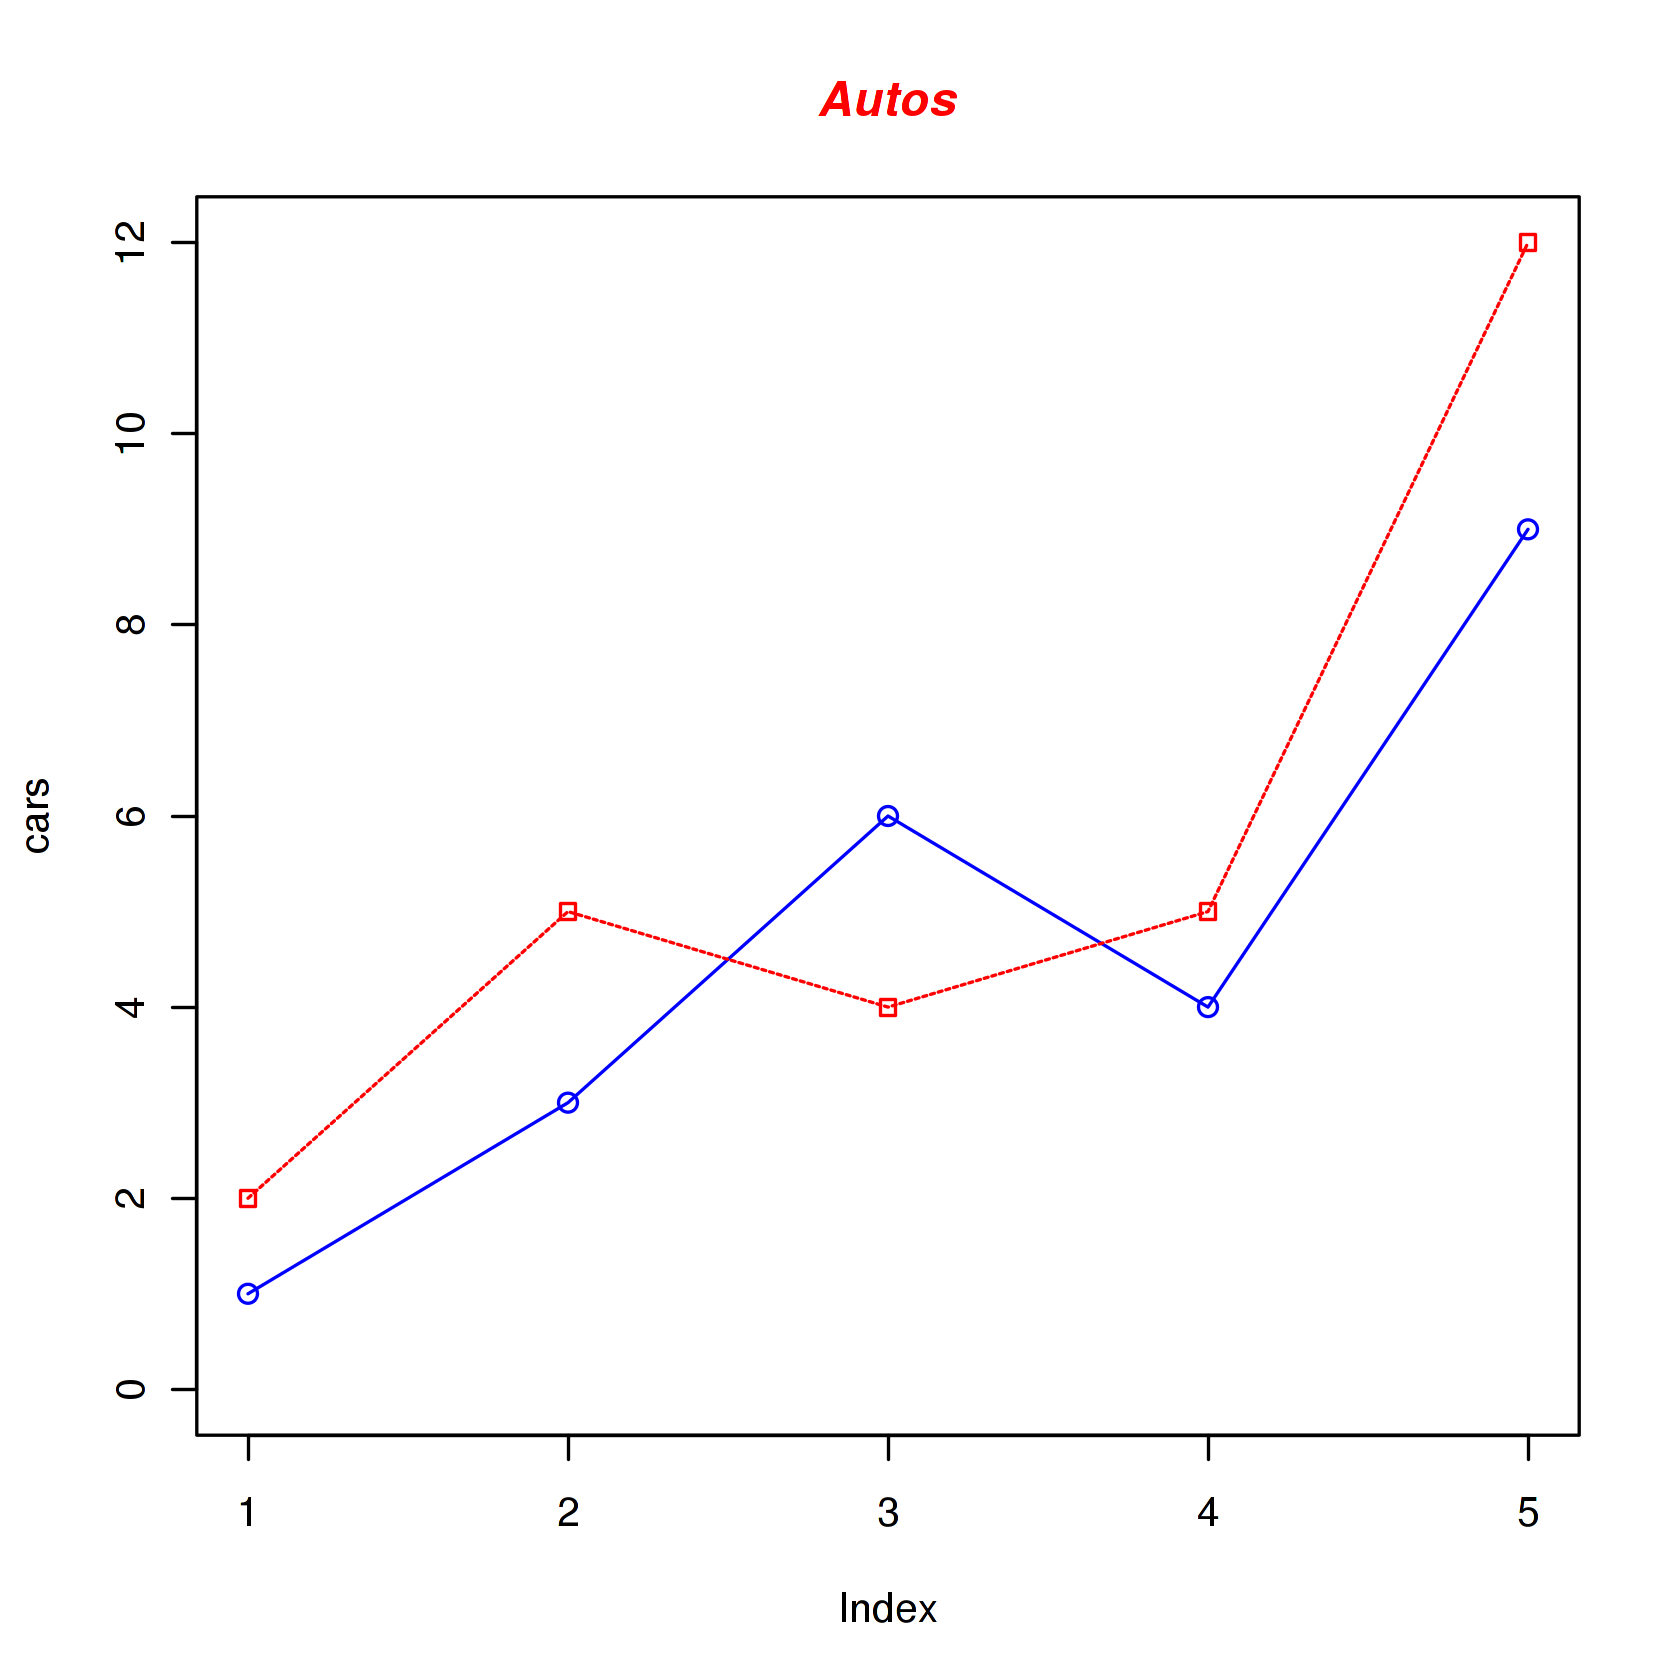 Shared - cloud-examples/r/r-plotting sagews